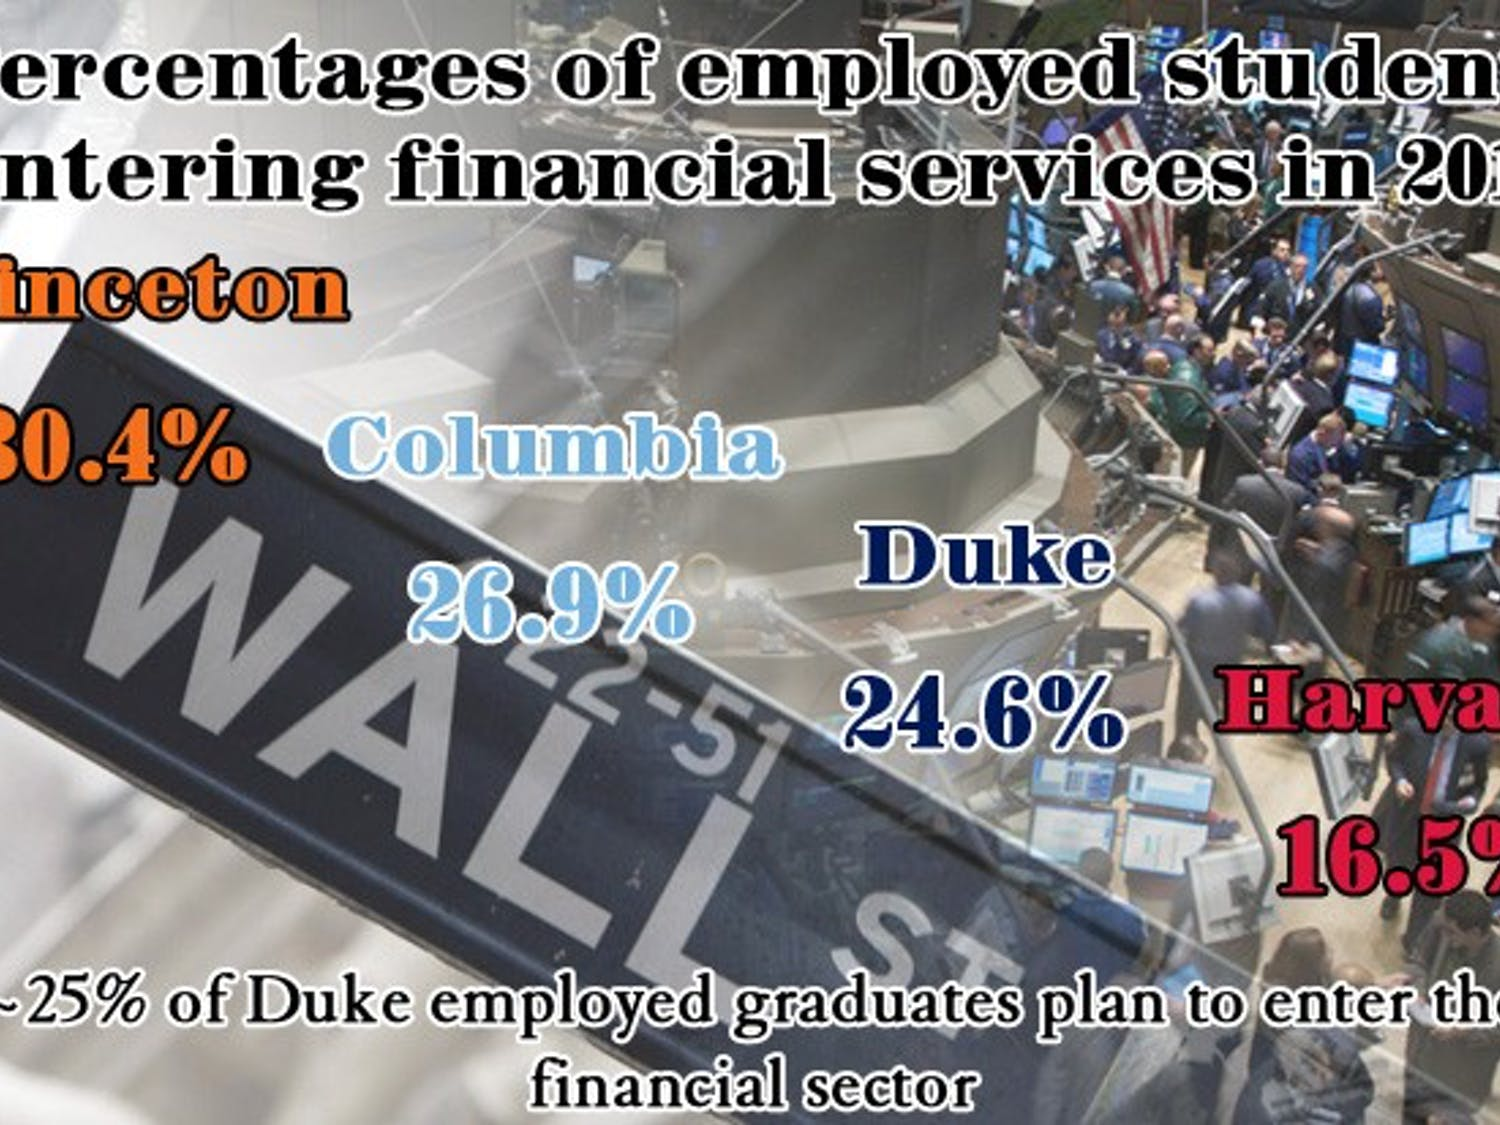 Roughly one-quarter of Duke students who are employed by graduation enter the finance industry.